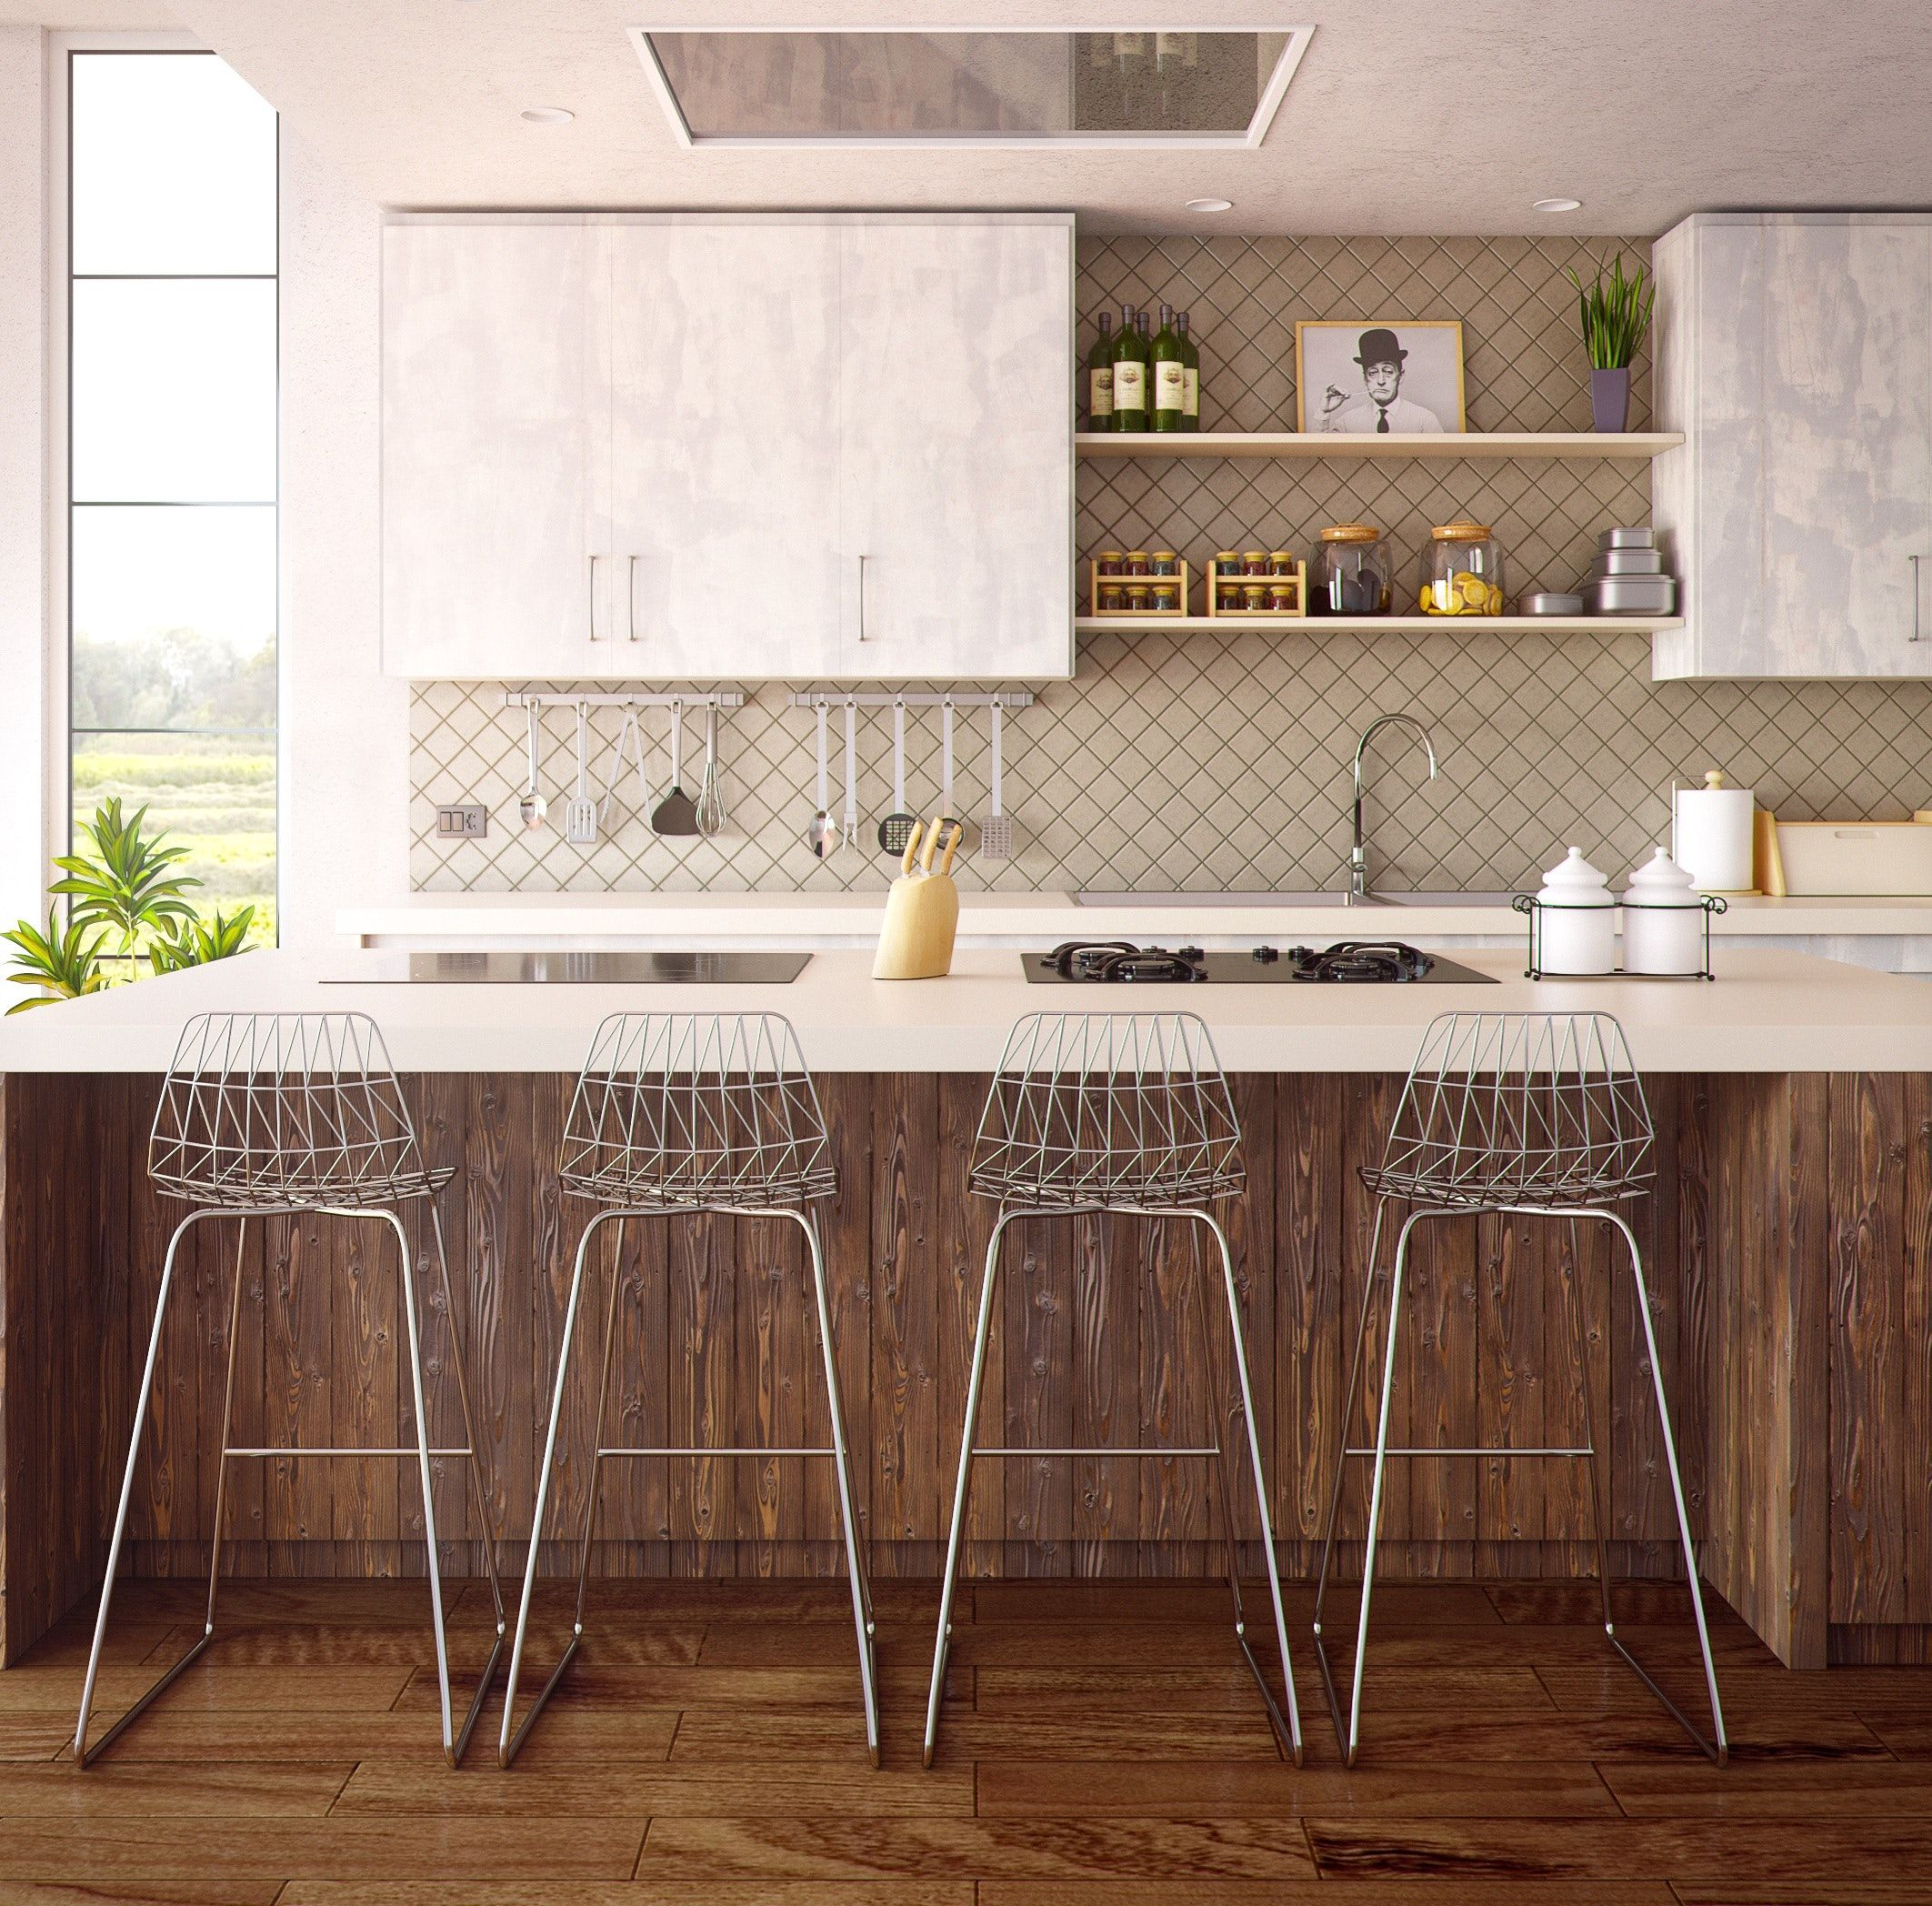 How To Increase Your Home Value with Kitchen Renovation.